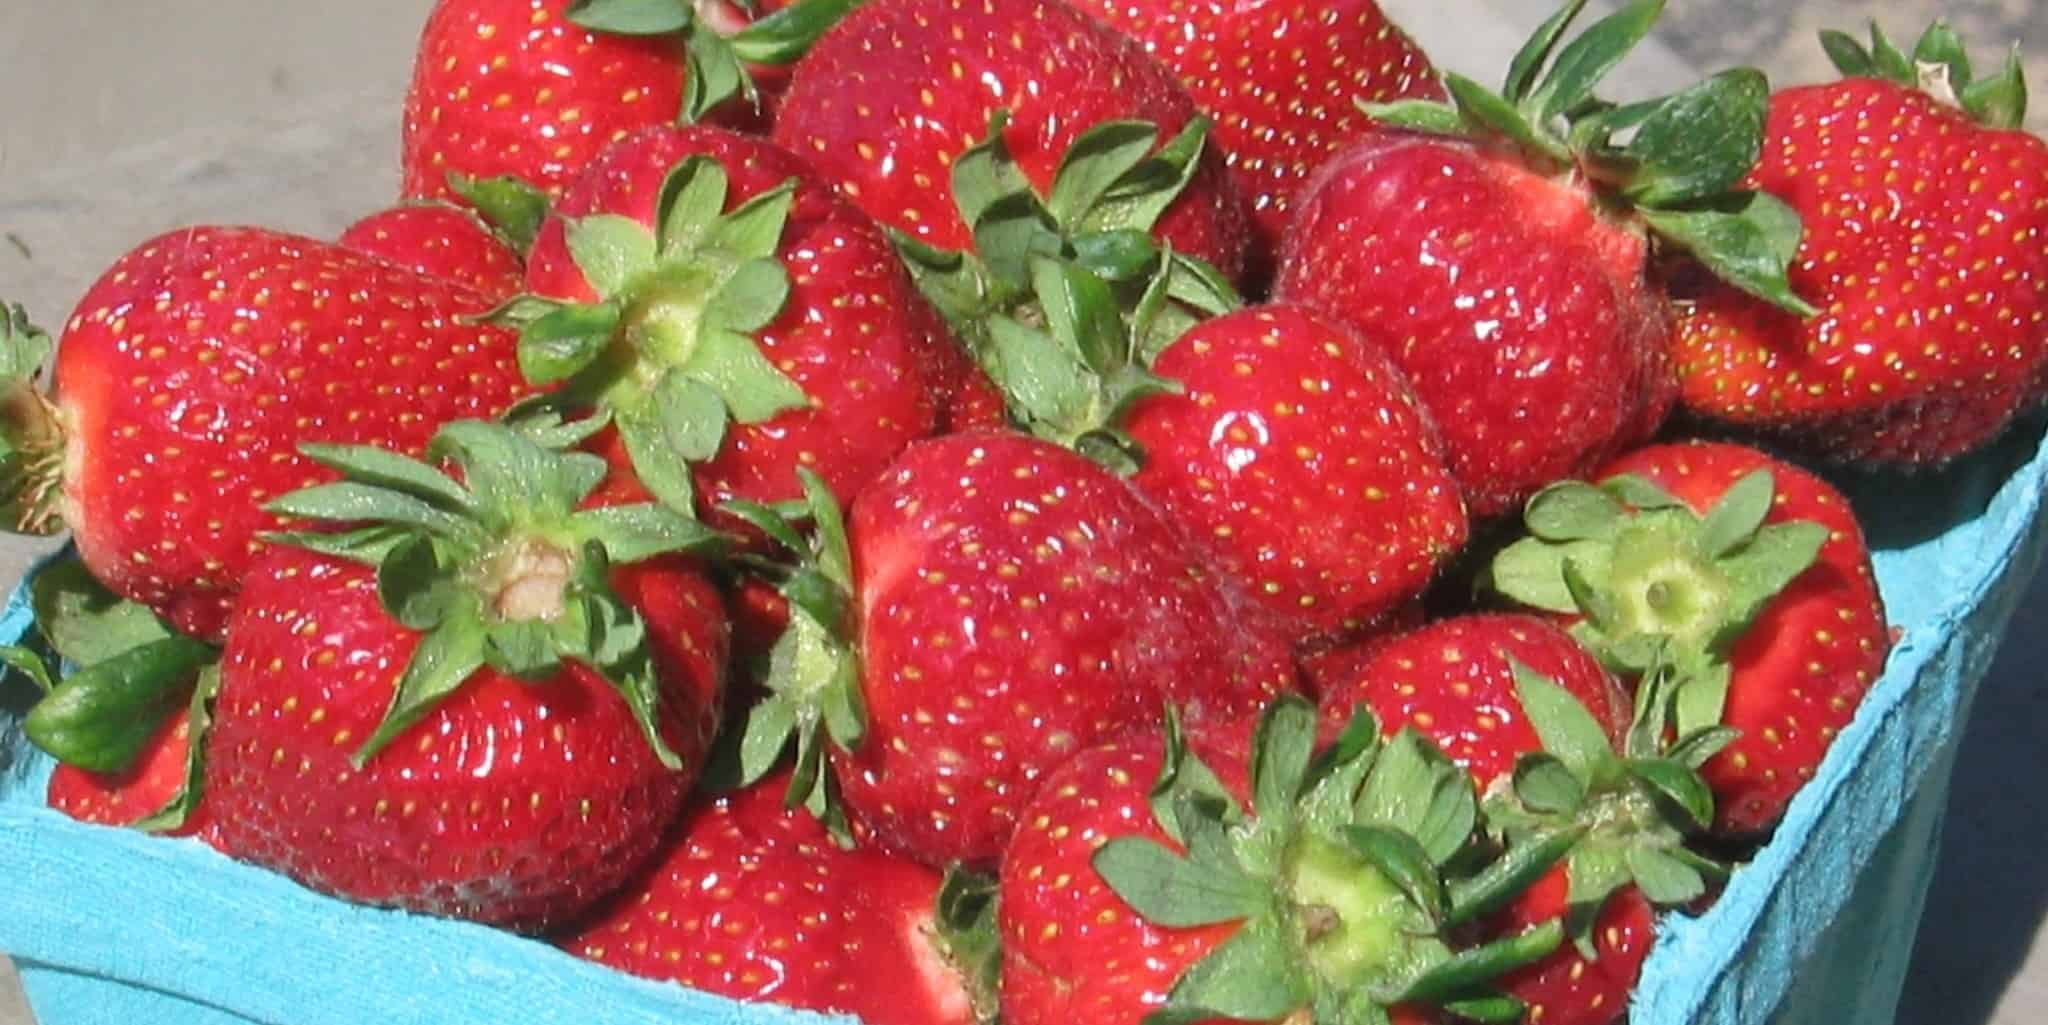 FIRST of the SEASON STRAWBERRIES ARE HERE!!!